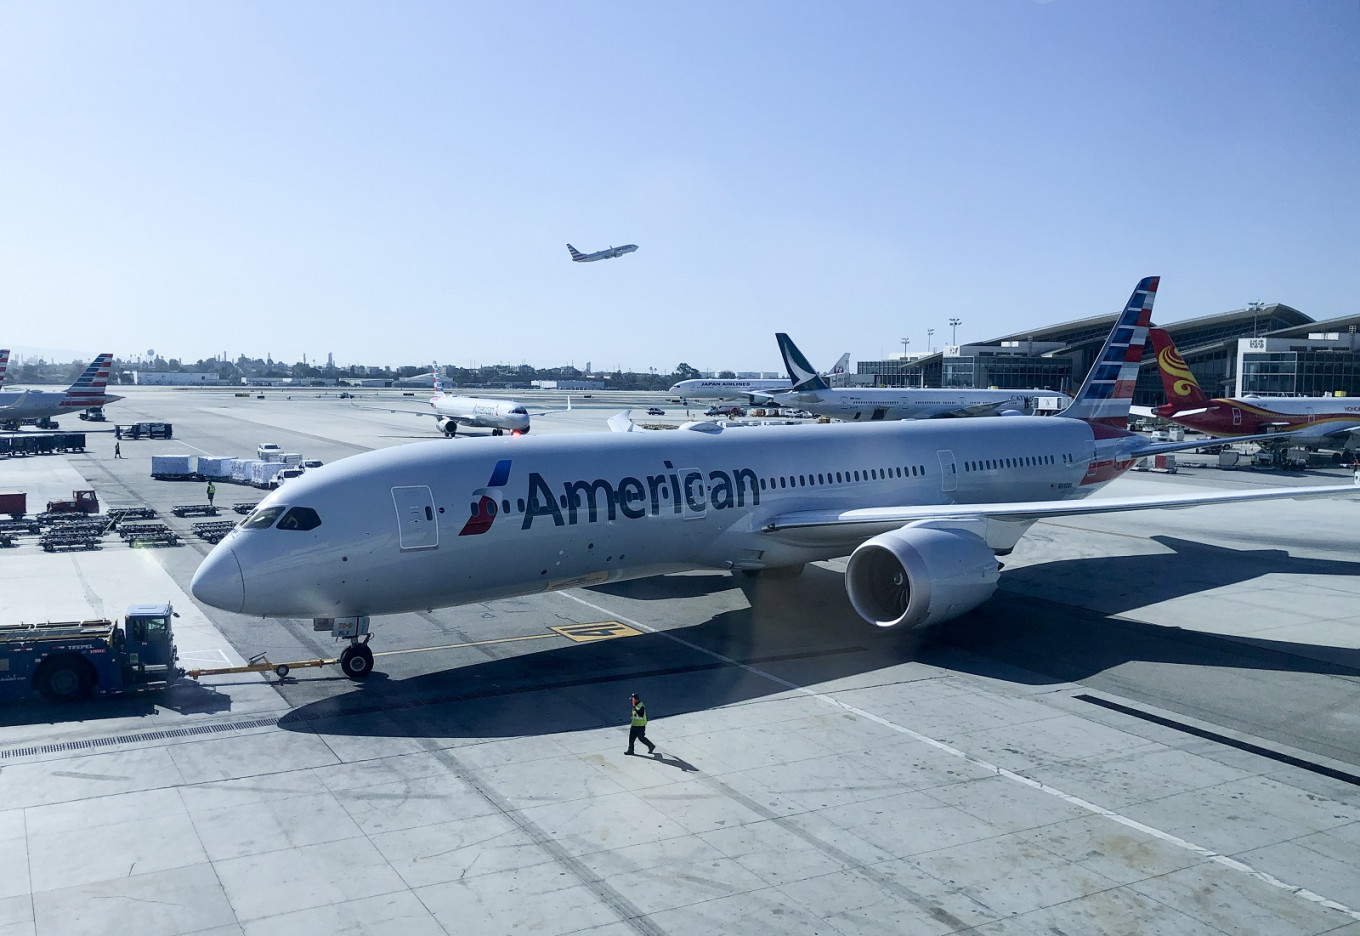 EPA to OK American Airlines use of surface coating to fight COVID-19